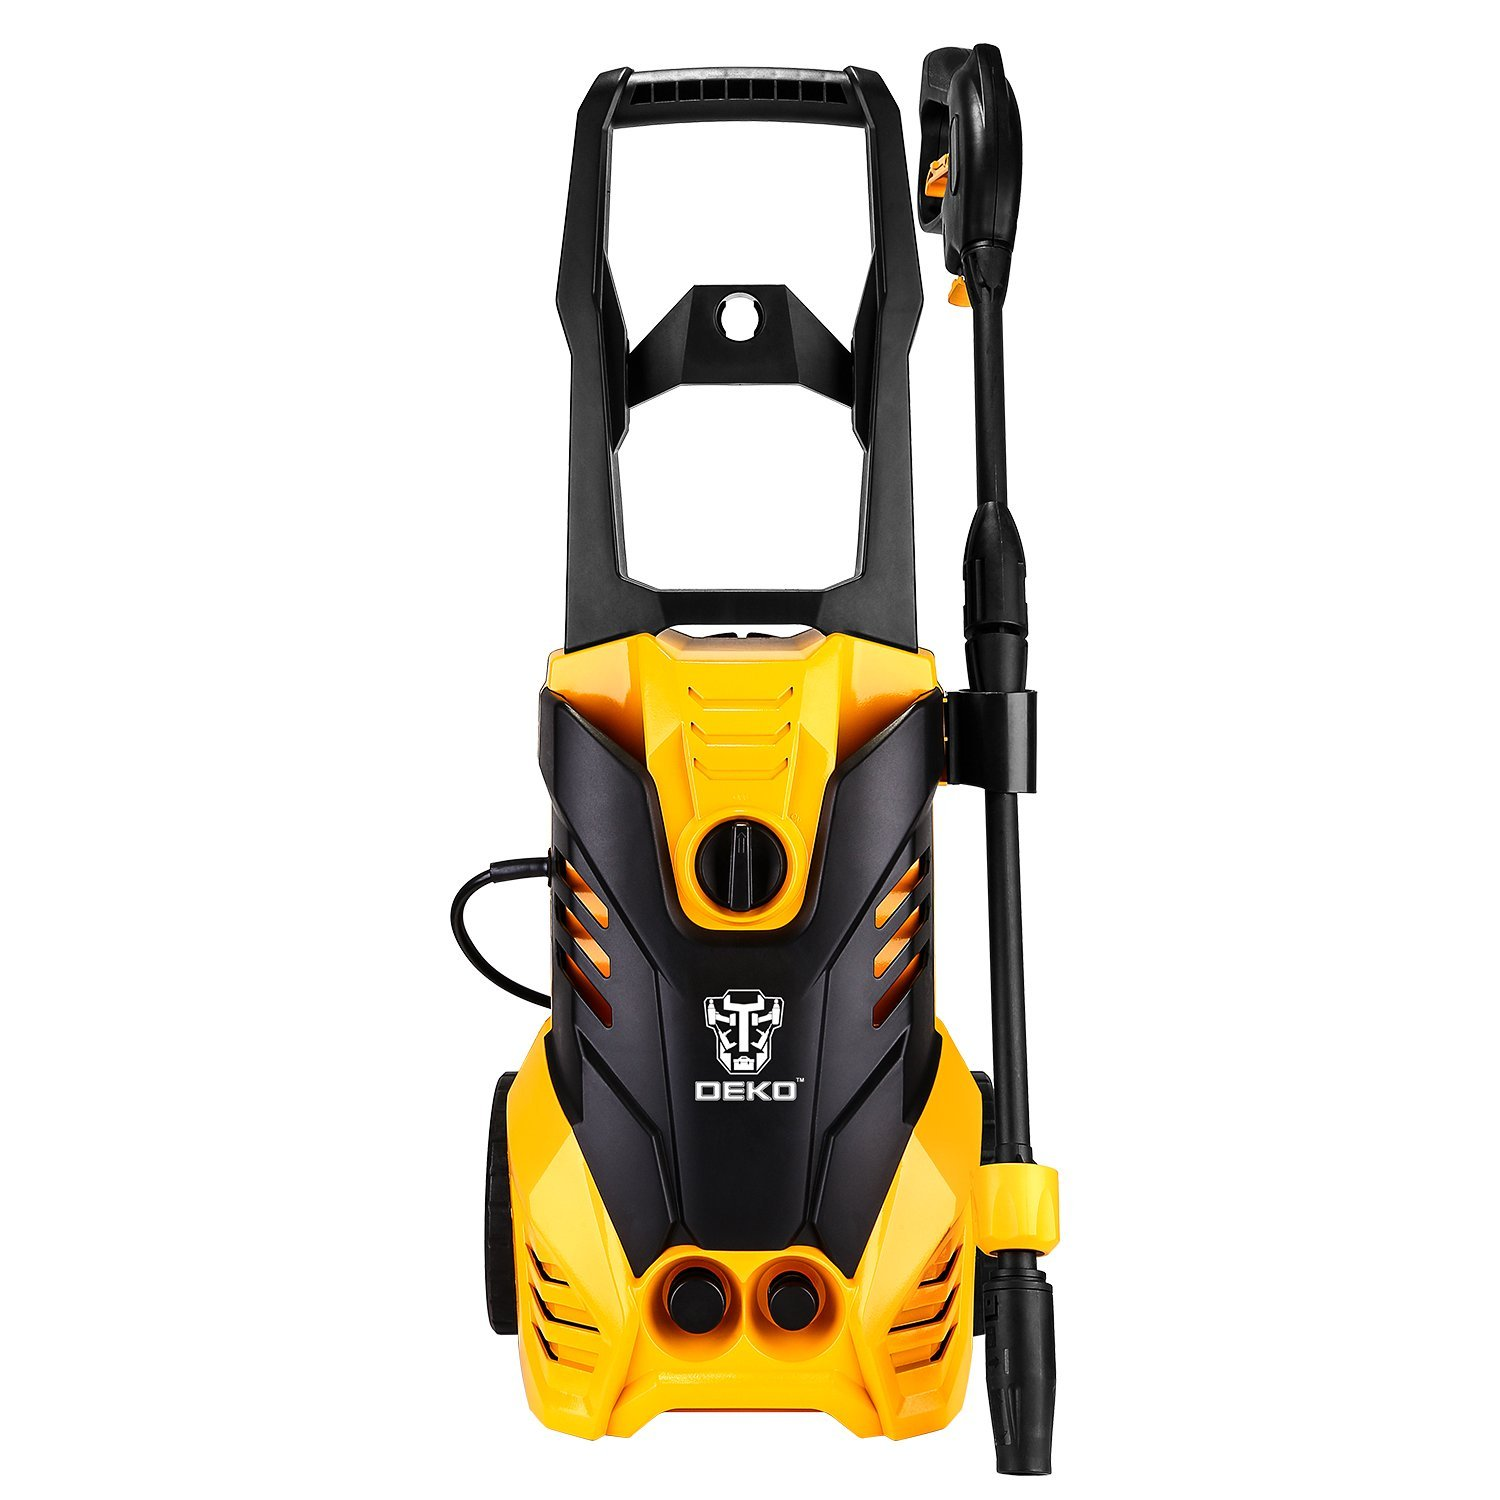 DEKO Electric Power Pressure Washer 2030 PSI 1.7 GPM with Power Hose Nozzle Gun, Integrated Hose Reel,Built in Foam Dispenser